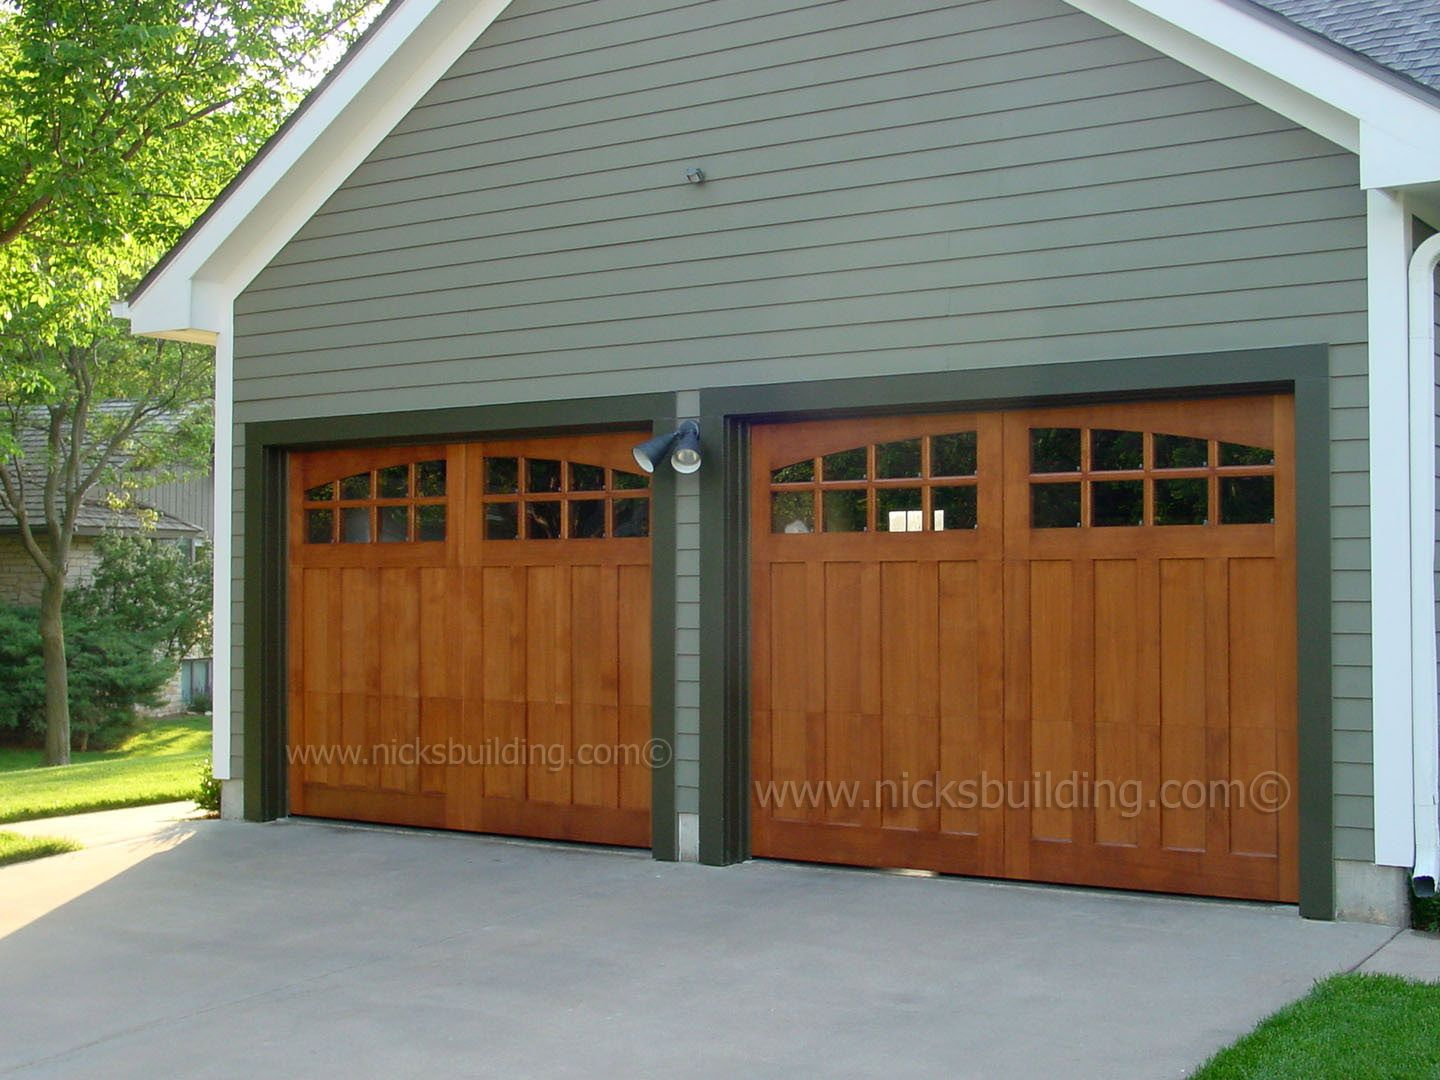 Classica northampton garage door white 9 x 8 no windows - Wood Garage Doors Stable Style Garage Doors Garage Door With Glass Brown Door